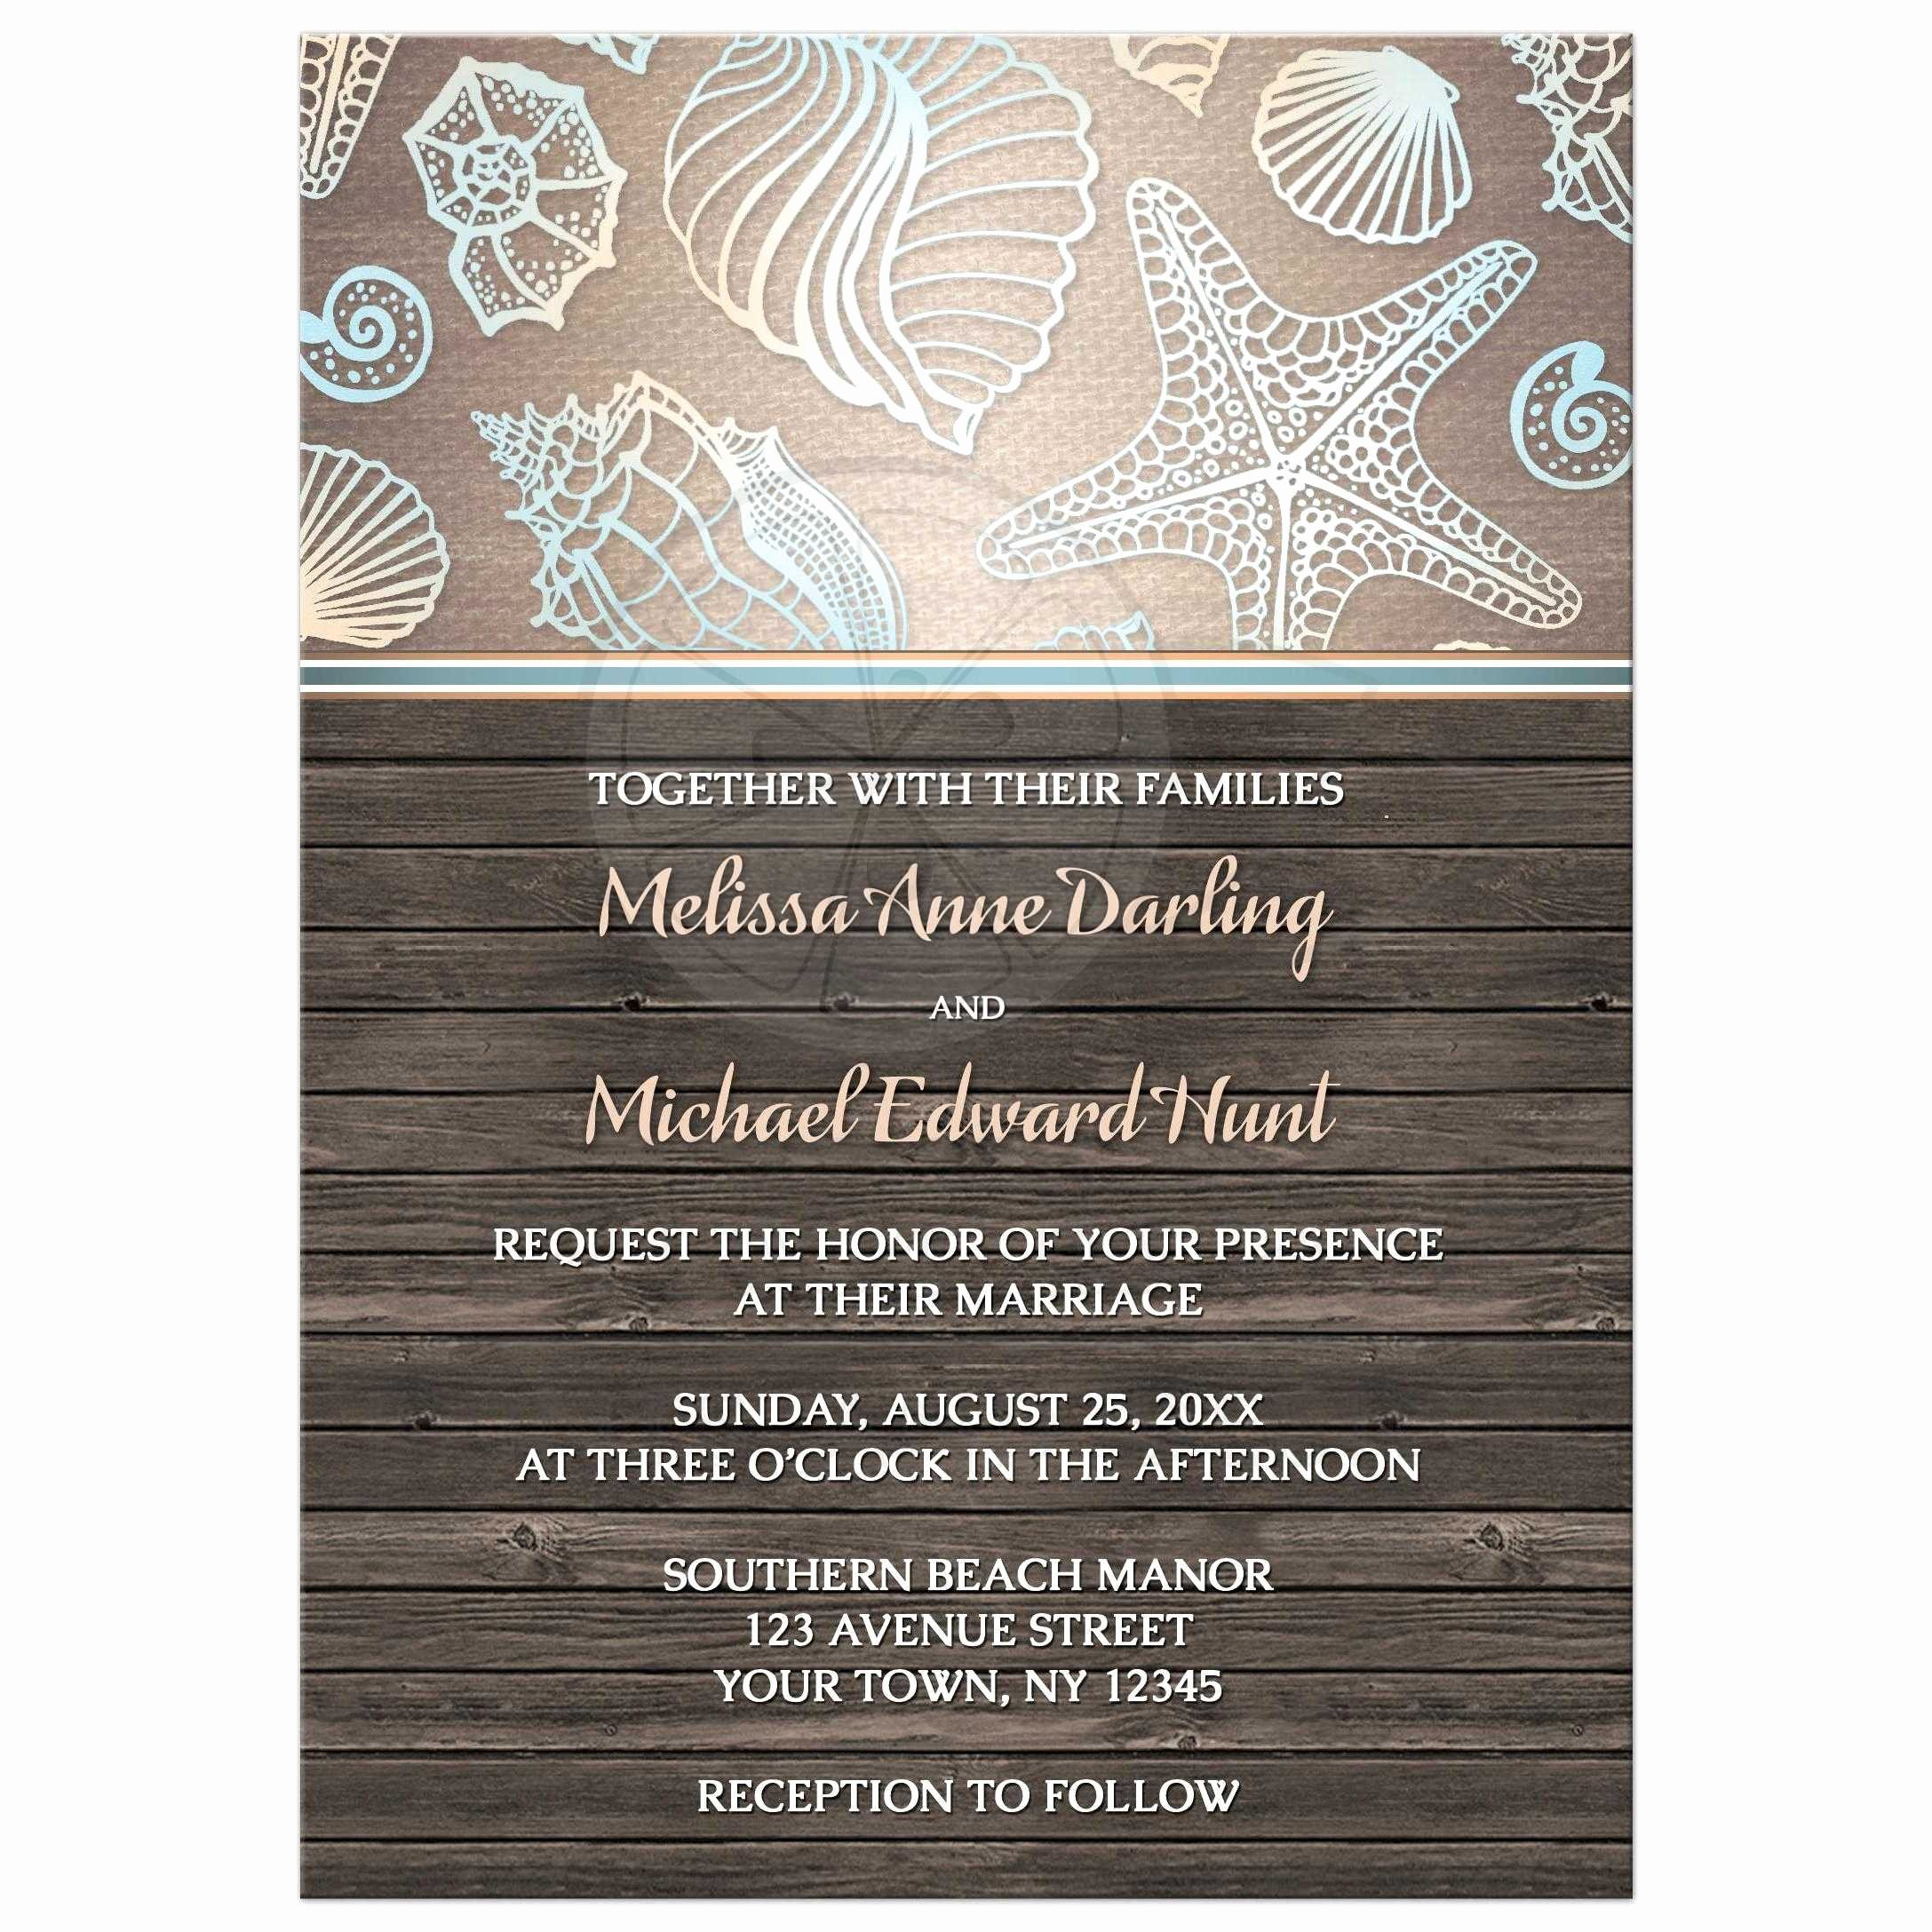 Rustic Beach Wedding Invitations Lovely Wedding Invitations Rustic Wood Beach Seashell